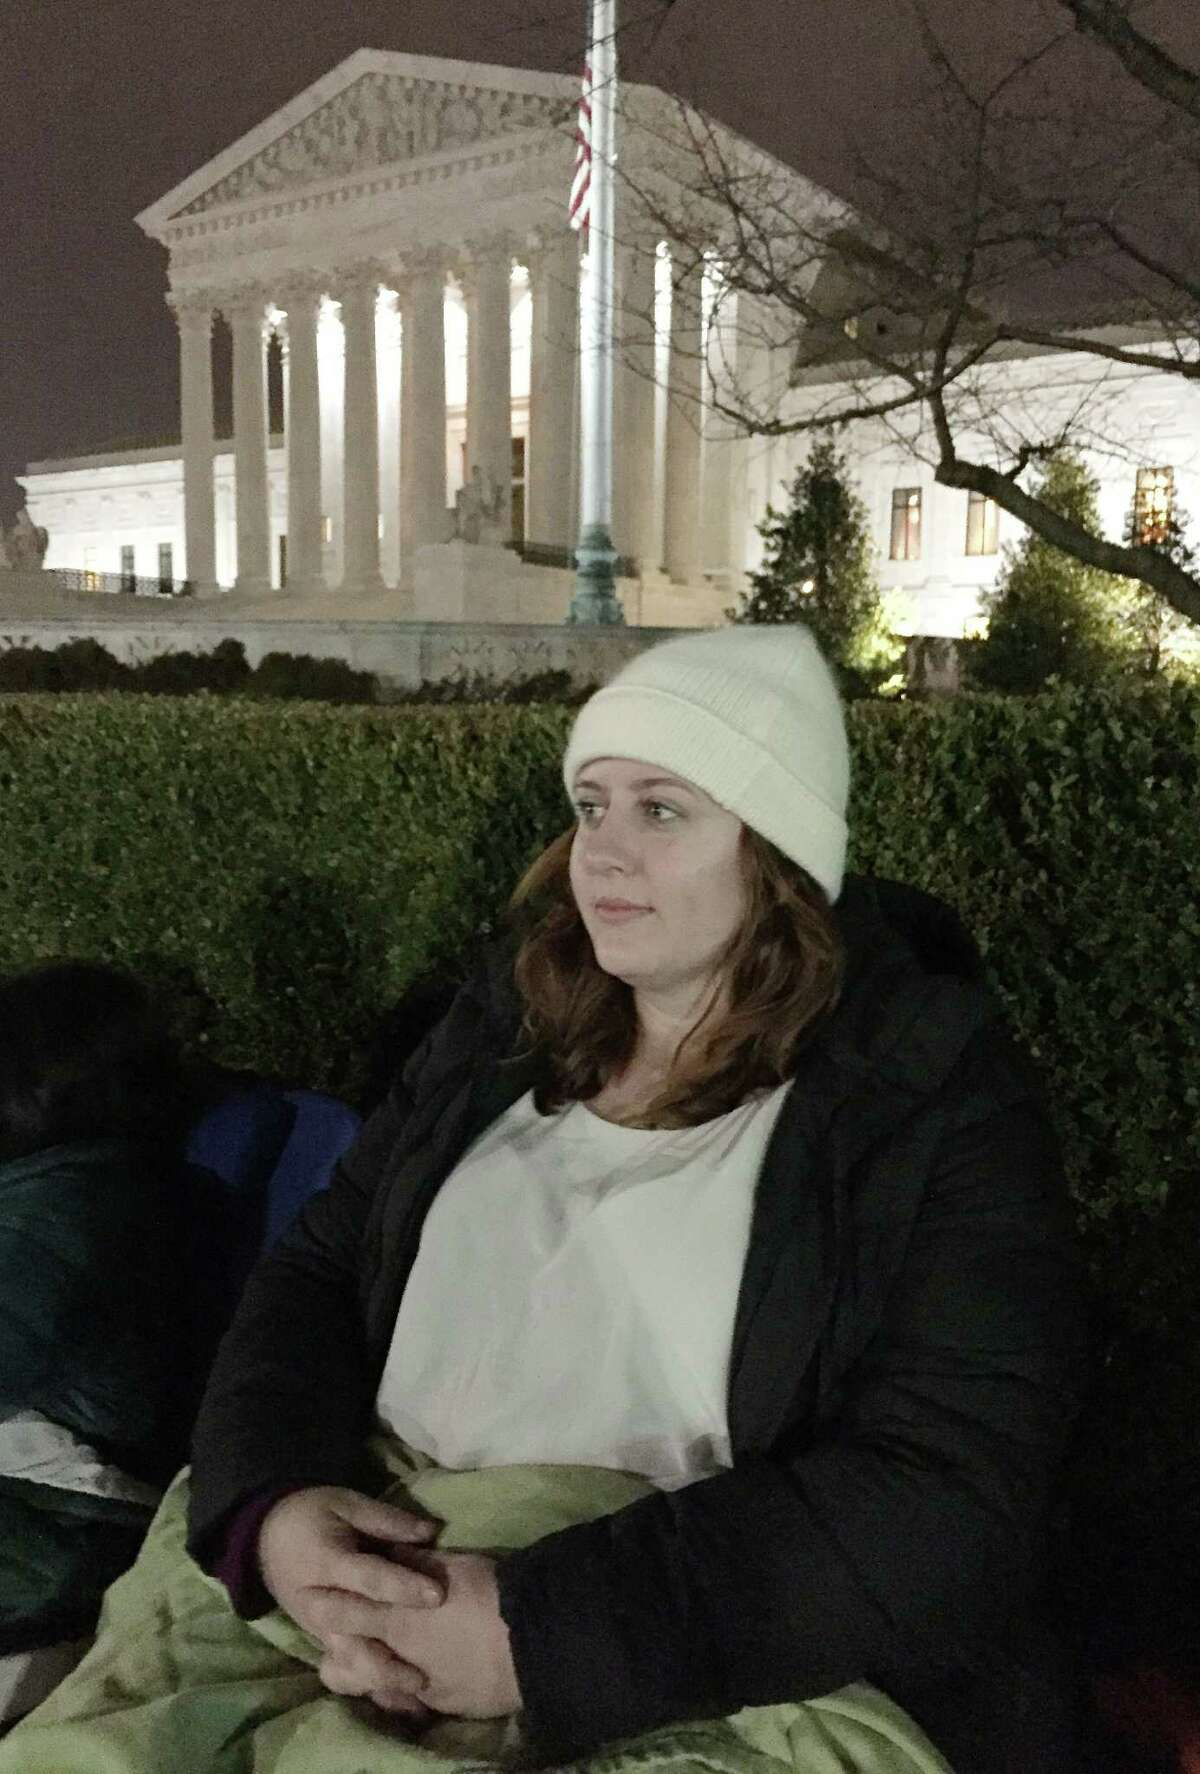 """Anne Swift, 28, a University of Texas at Austin law student, traveled to Washington, D.C., to watch the oral arguments in the landmark abortion case that started in her home town. Among the classes she skipped: """"federal courts."""""""